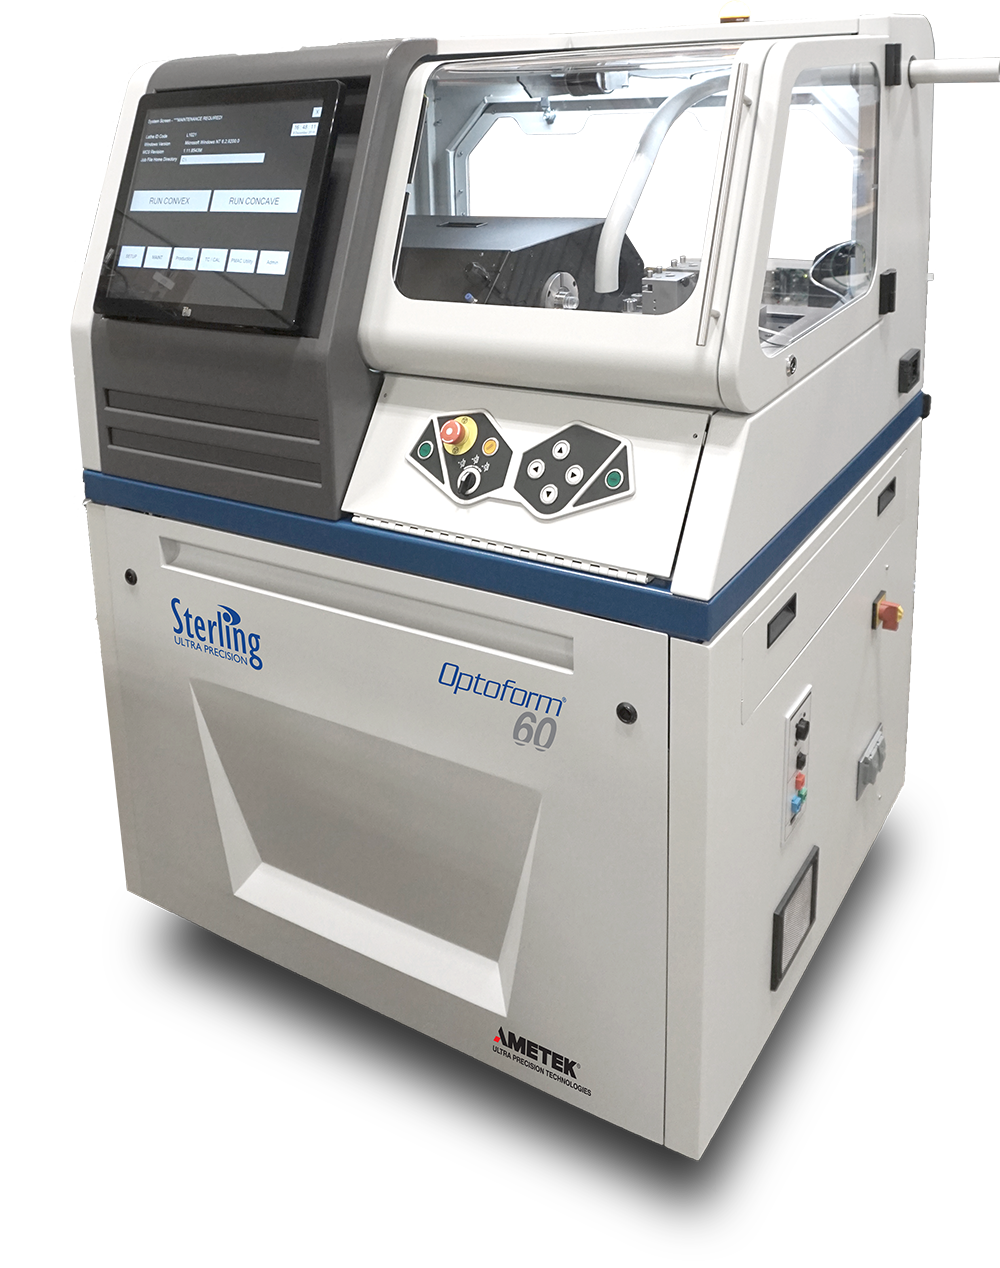 Optoform 60 ultra precision ophthalmic lathe